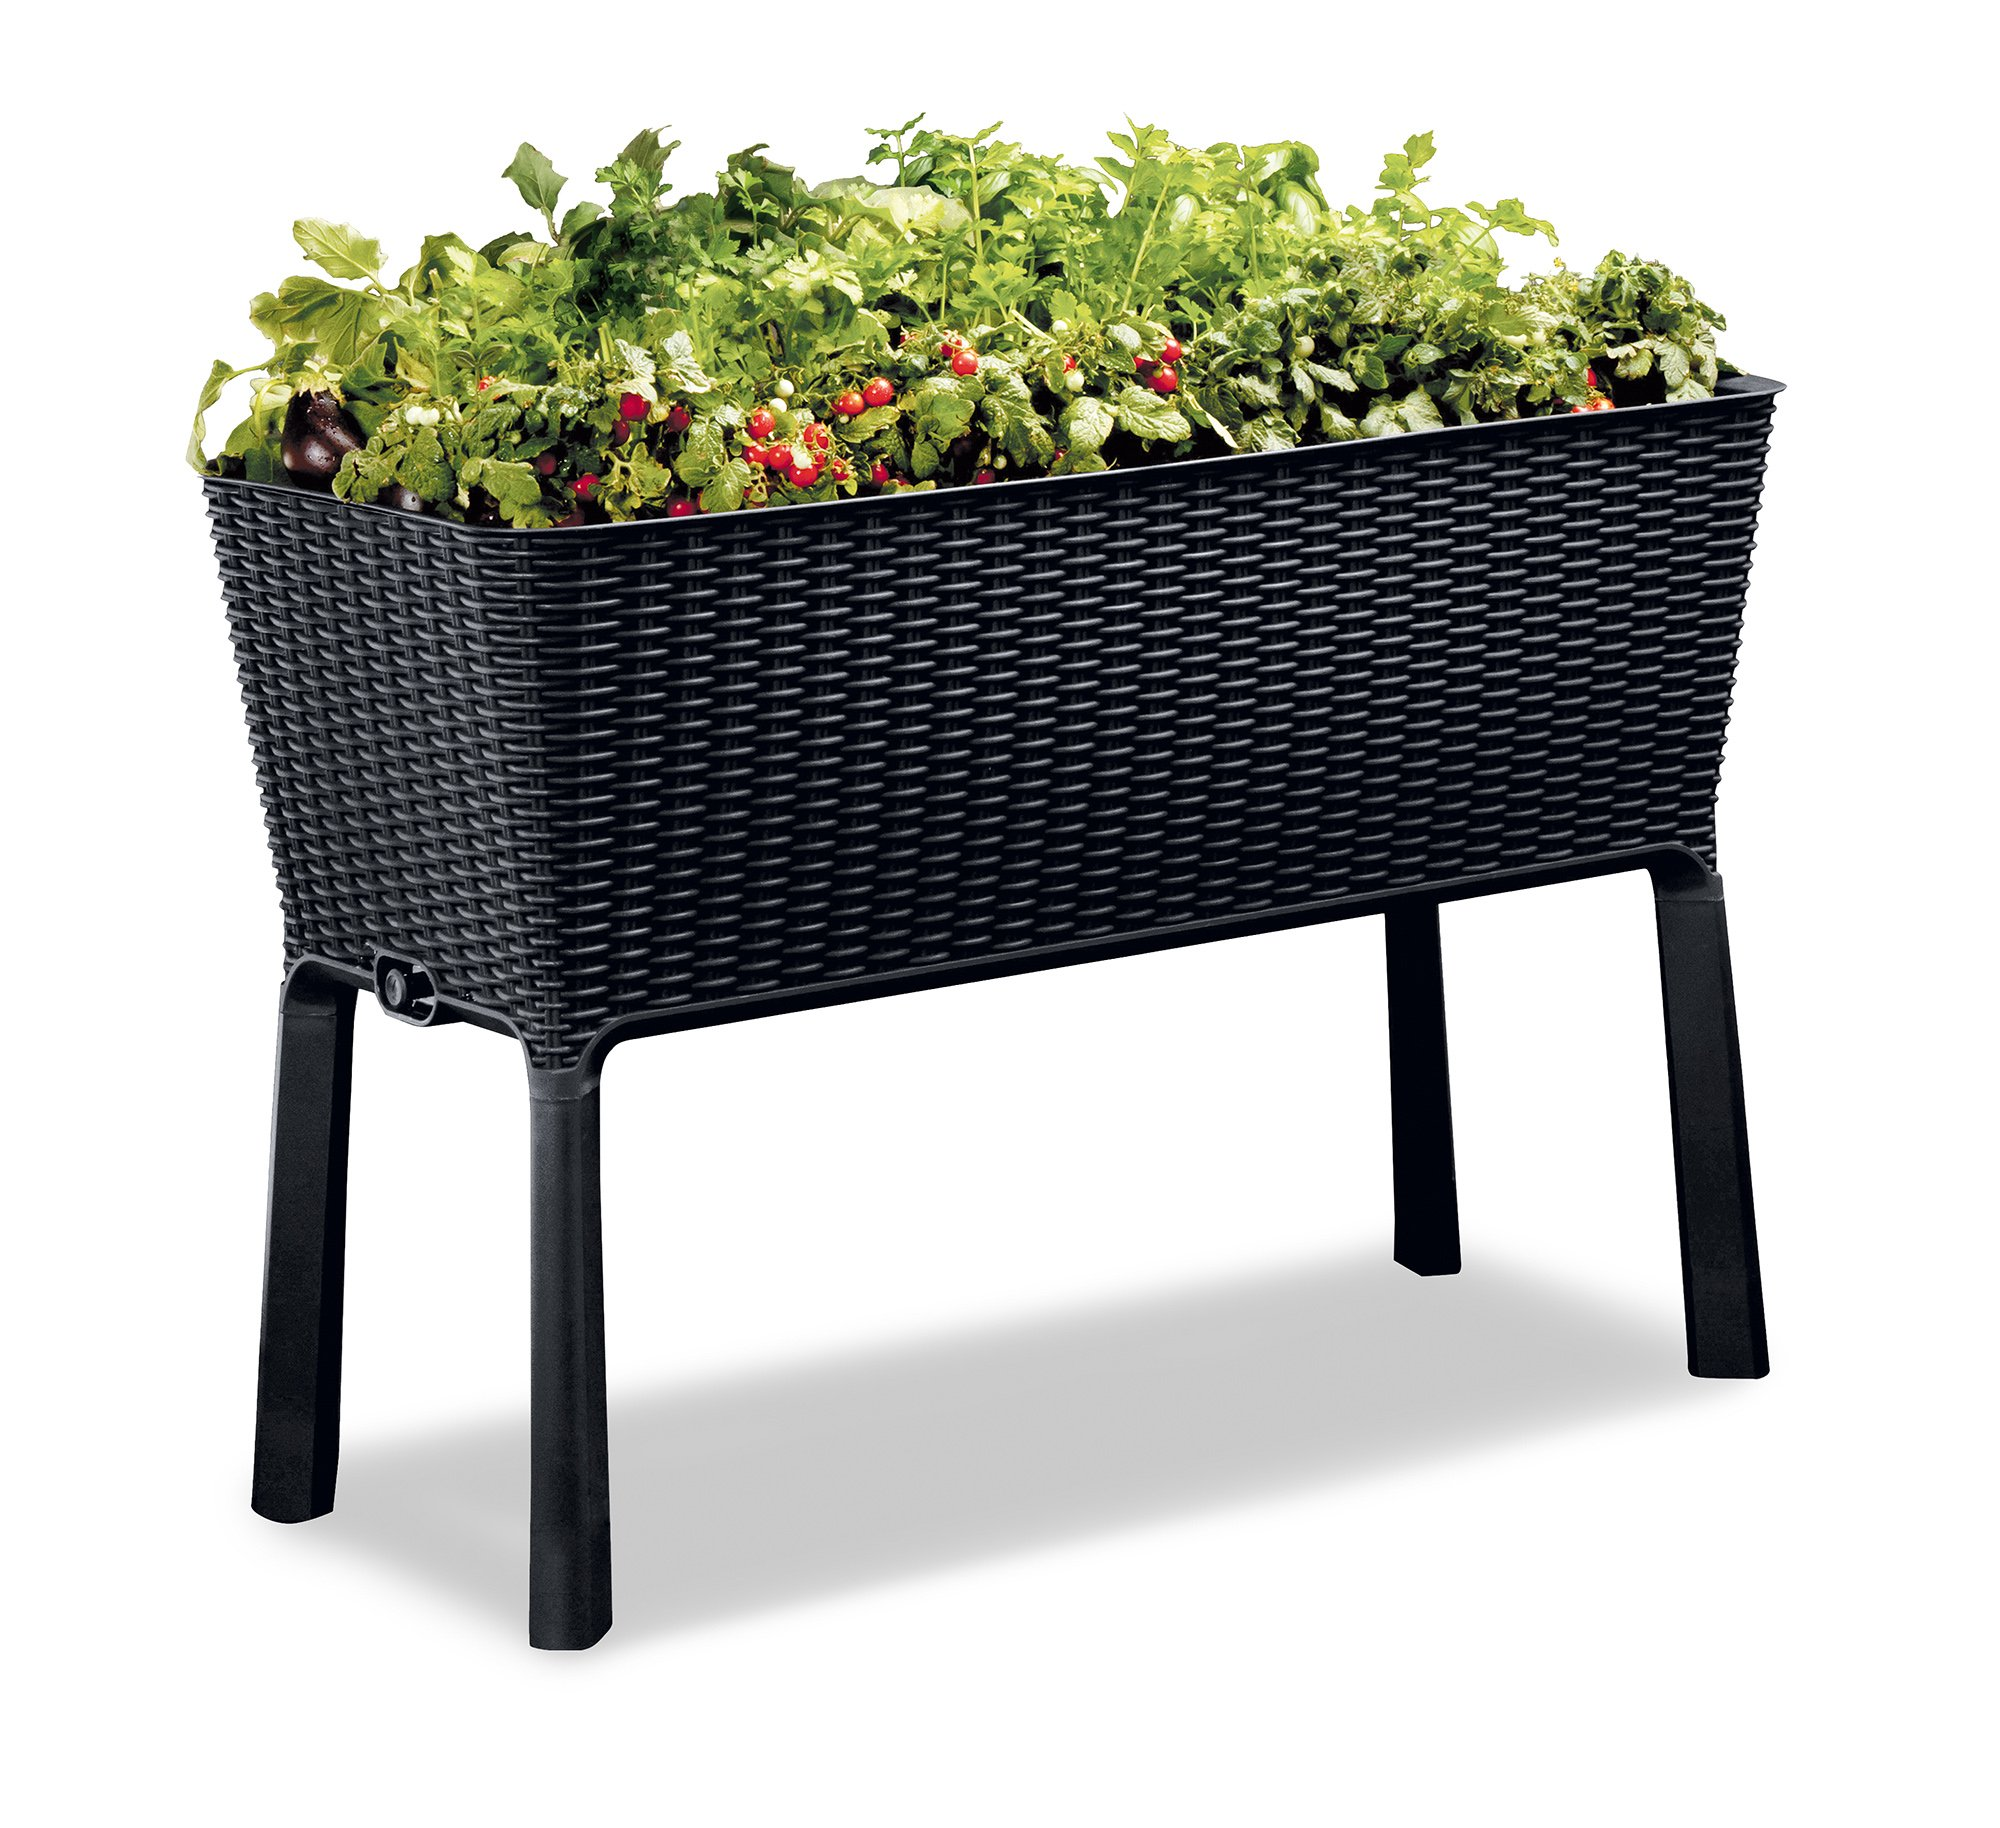 Keter Easy Grow 31.7 Gallon Raised Garden Bed with Self Watering Planter Box and Drainage Plug, Anthracite by Keter